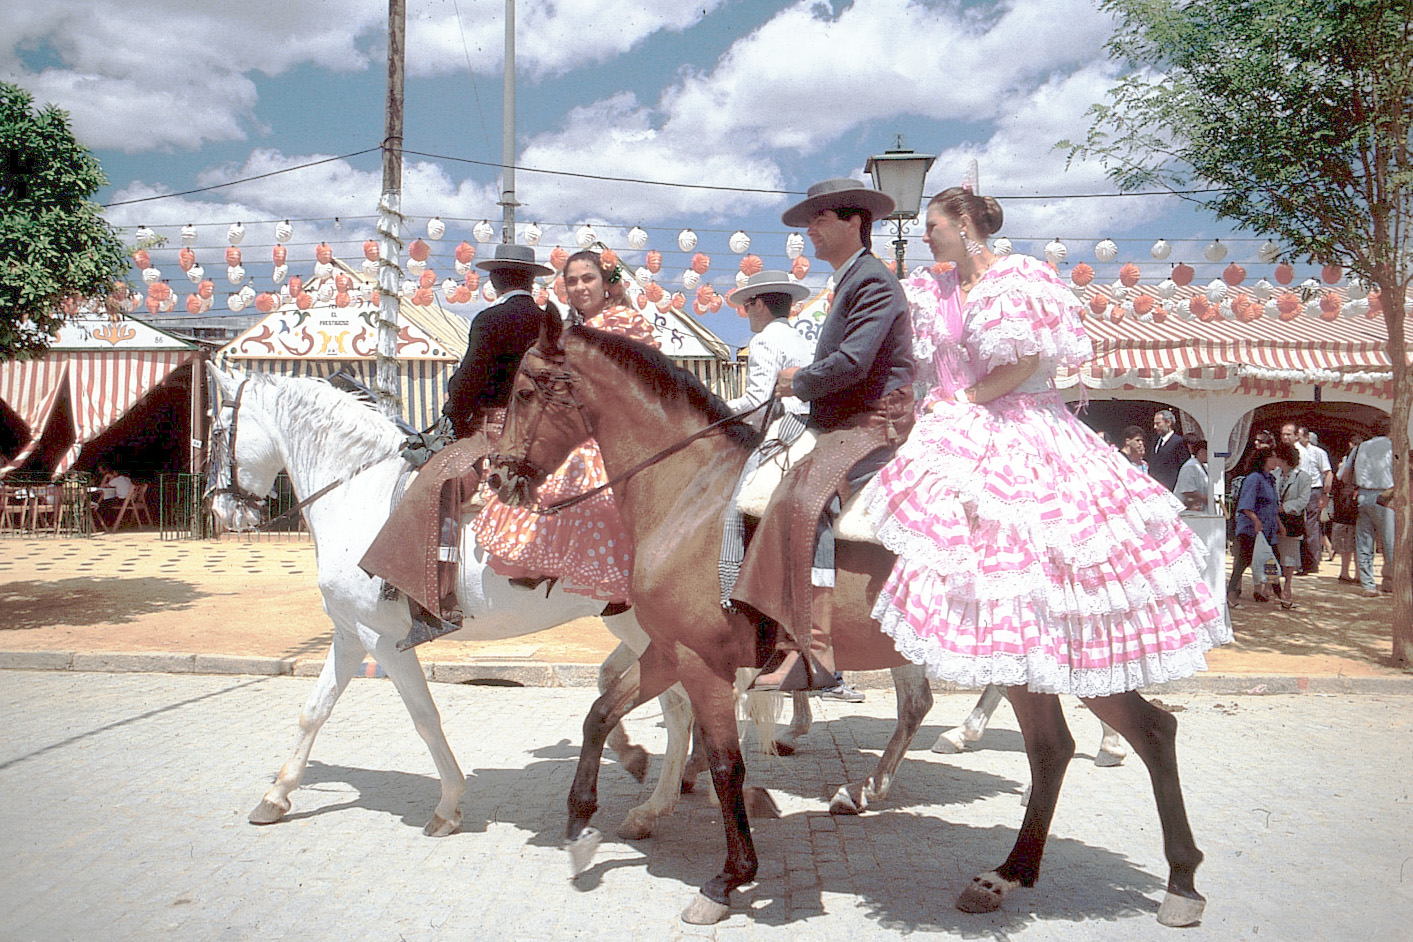 Fair in Seville